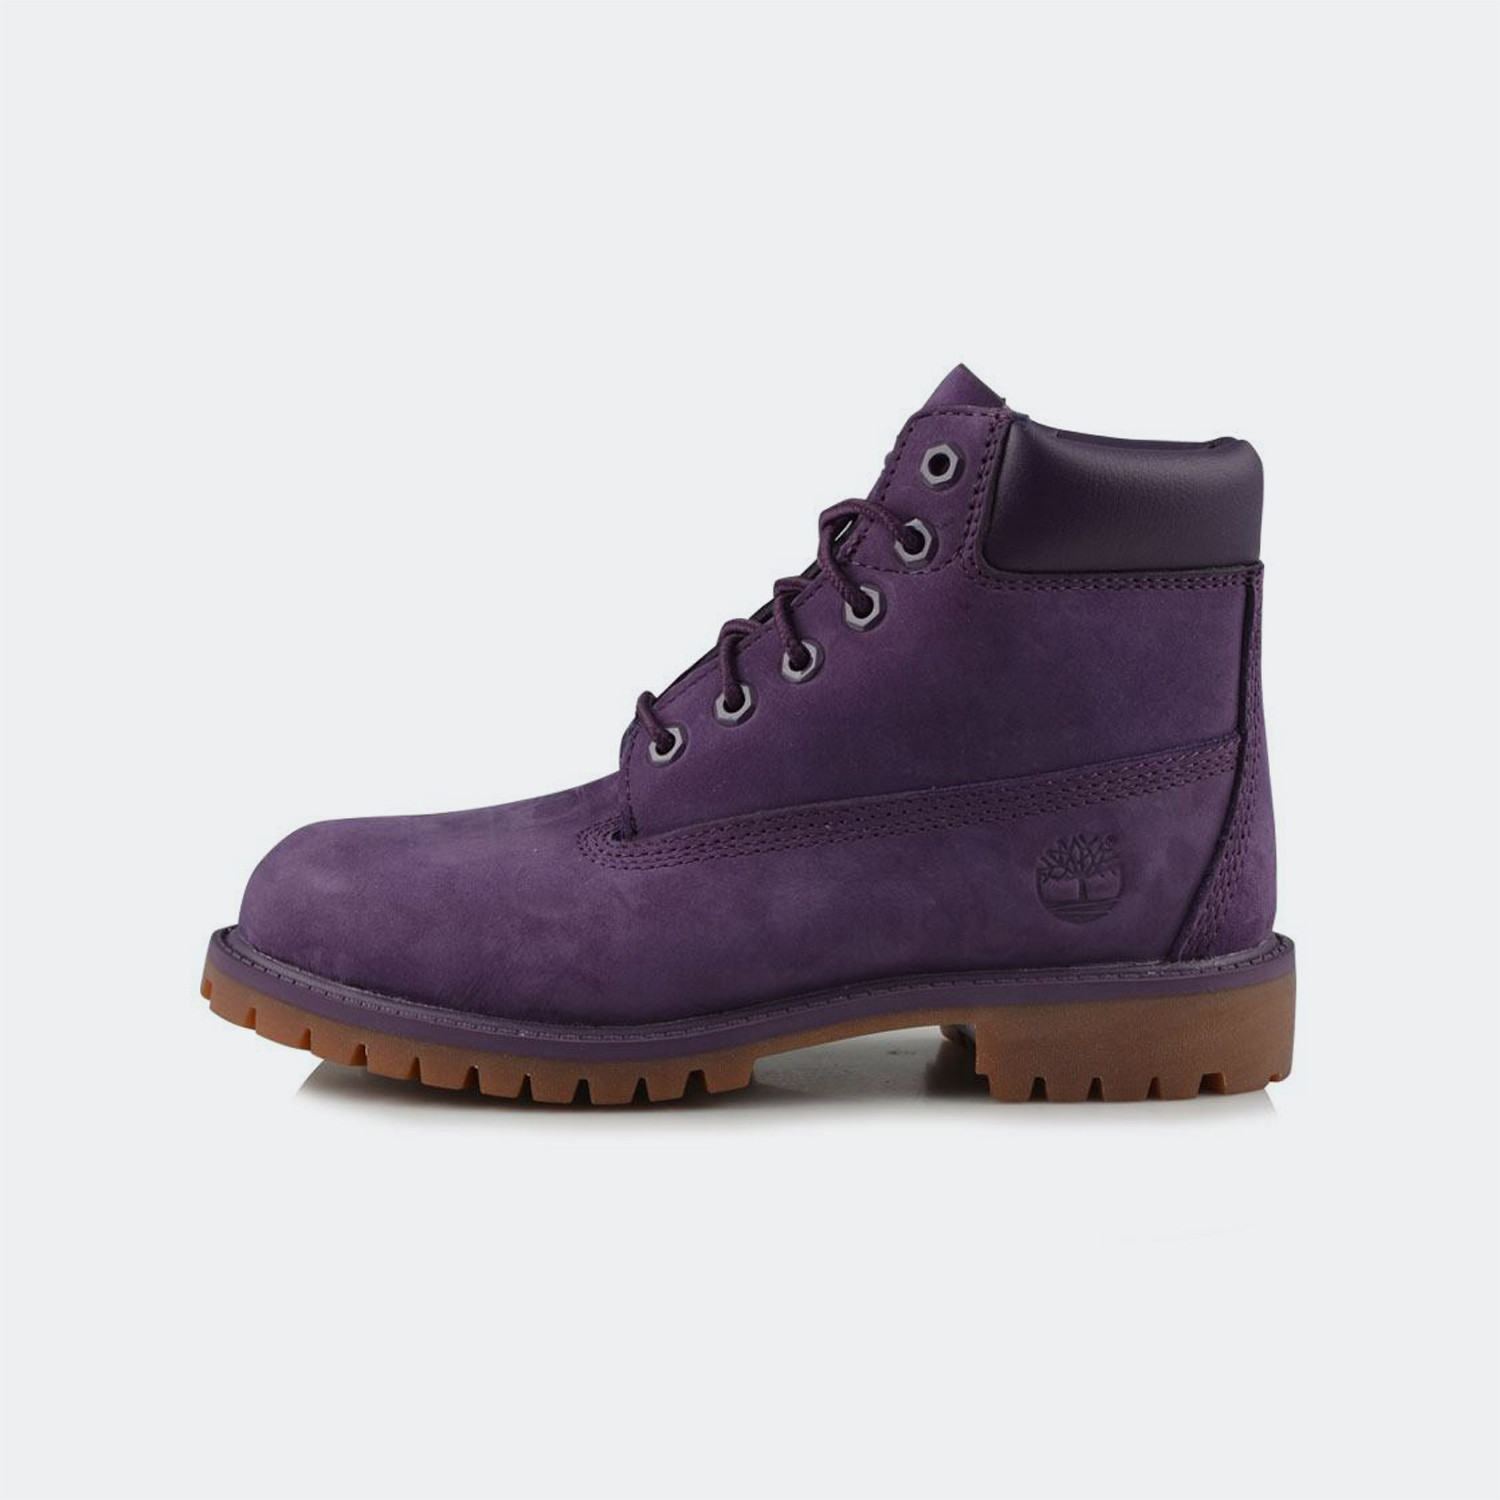 Timberland 6 In Premium Wp Boot Purple (1080031572_3149)